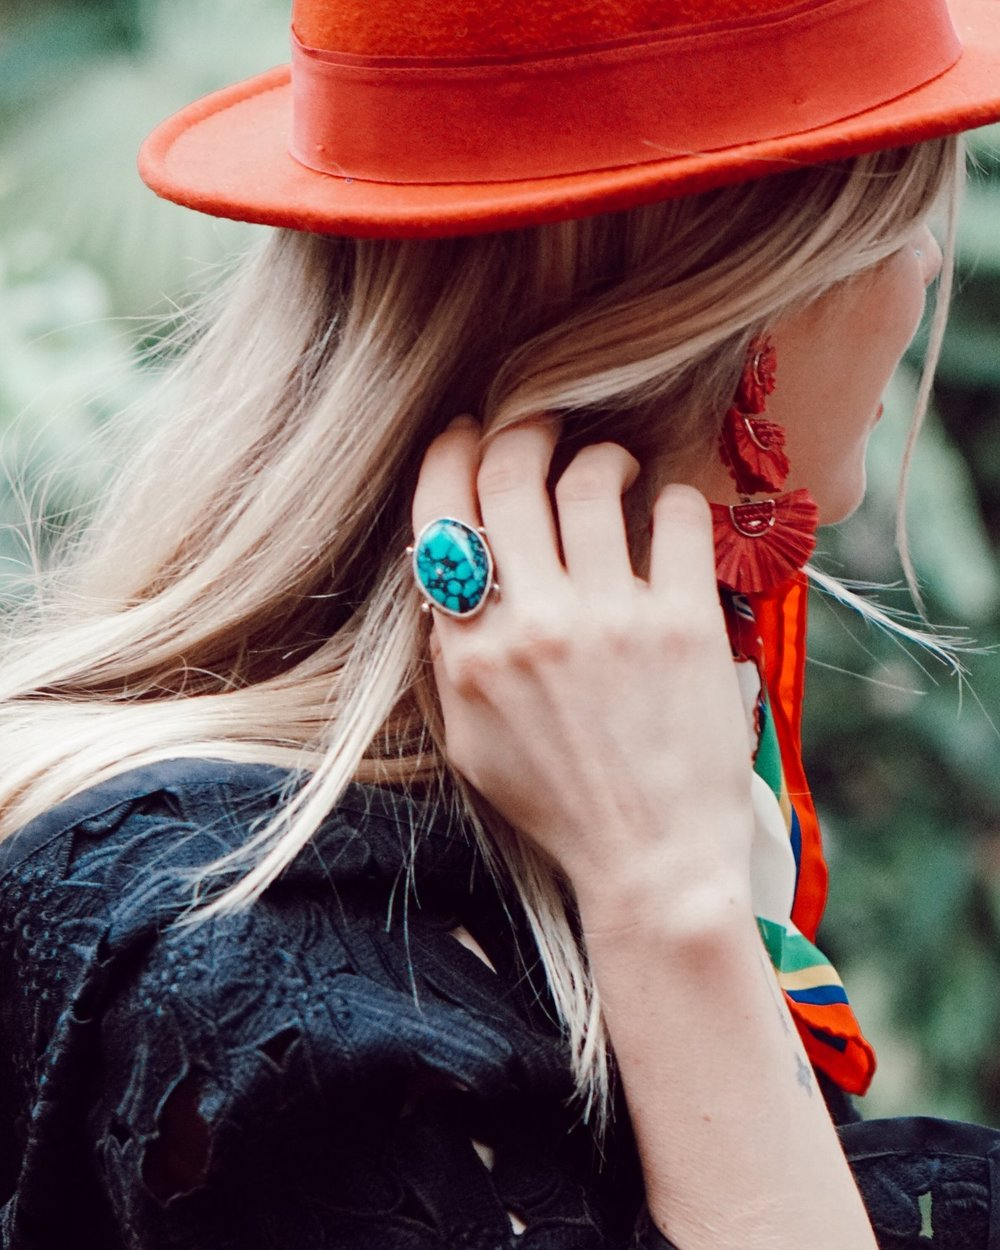 Over-Sized Turquoise Ring - $355 | Handmade